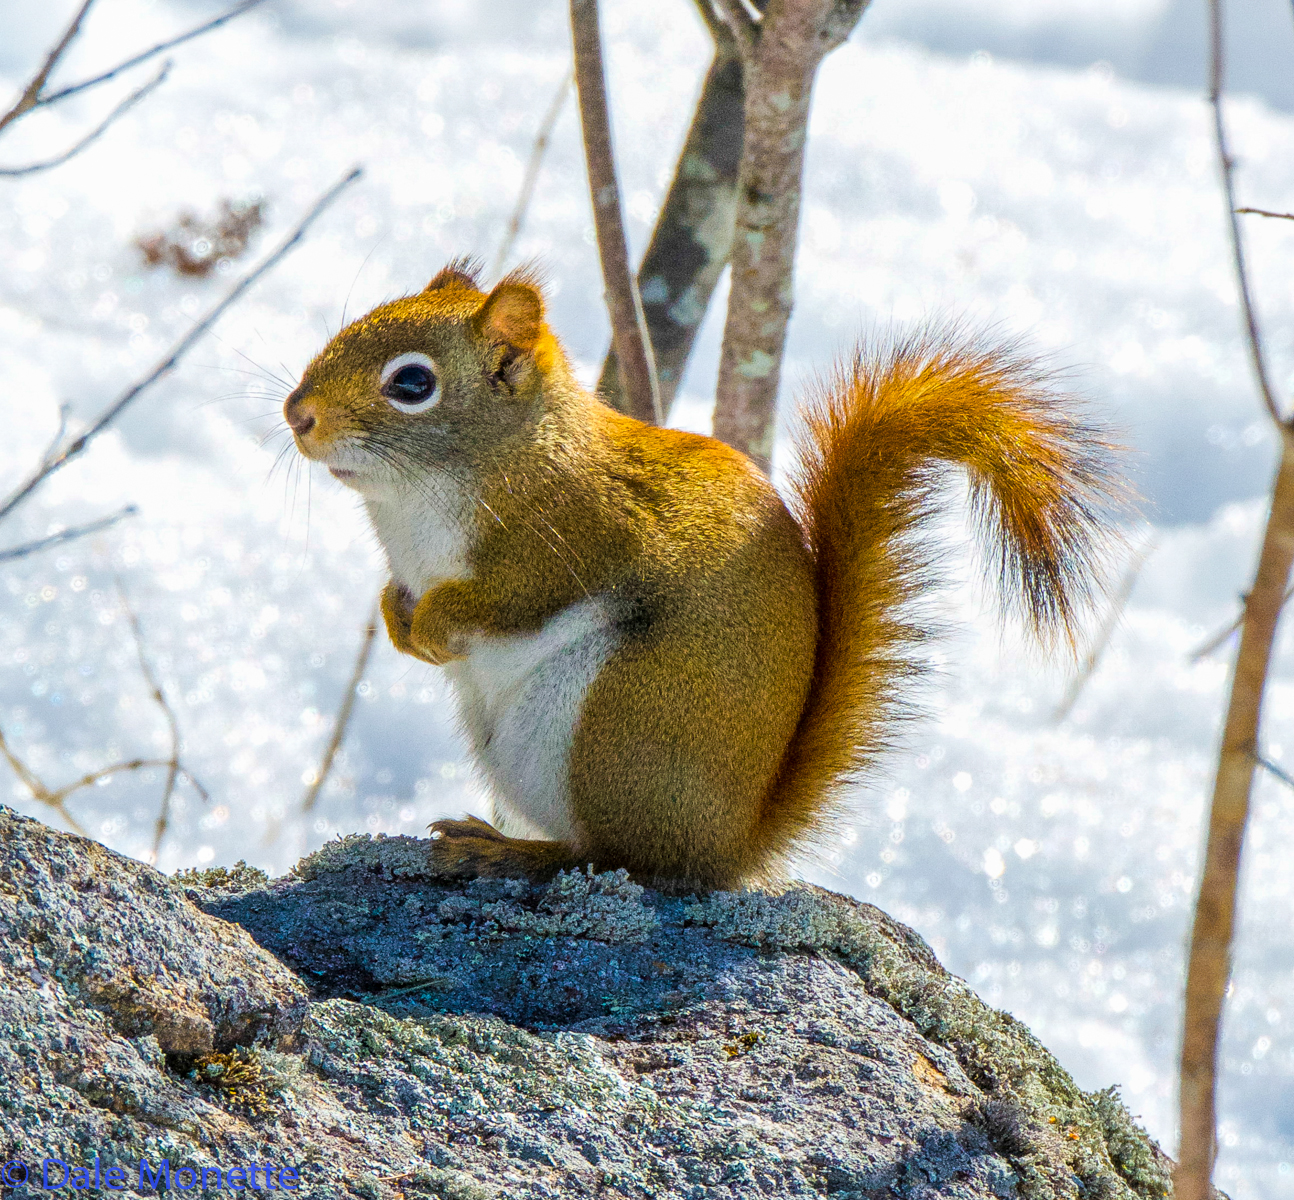 Red squirrels are very common and can be heard chattering everywhere around Quabbin where there are pine and spruce trees.